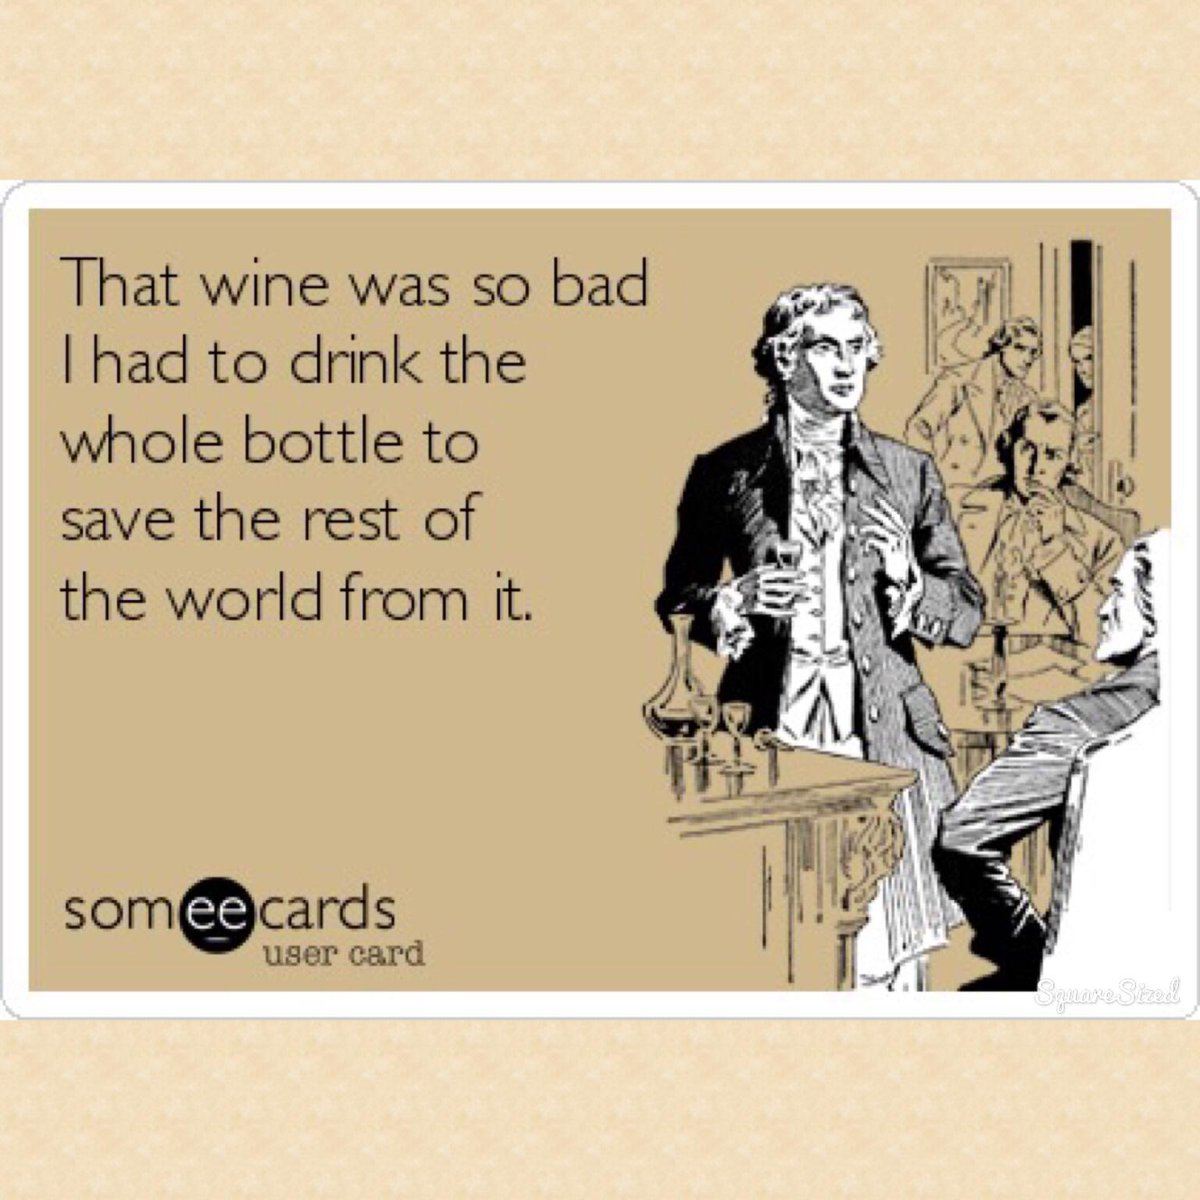 Sometimes you just have to do what's honorable. @Virginia_Made @winewankers @MacCocktail @KitchenSprout @Fiery01Red http://t.co/ZIVHScvMkJ